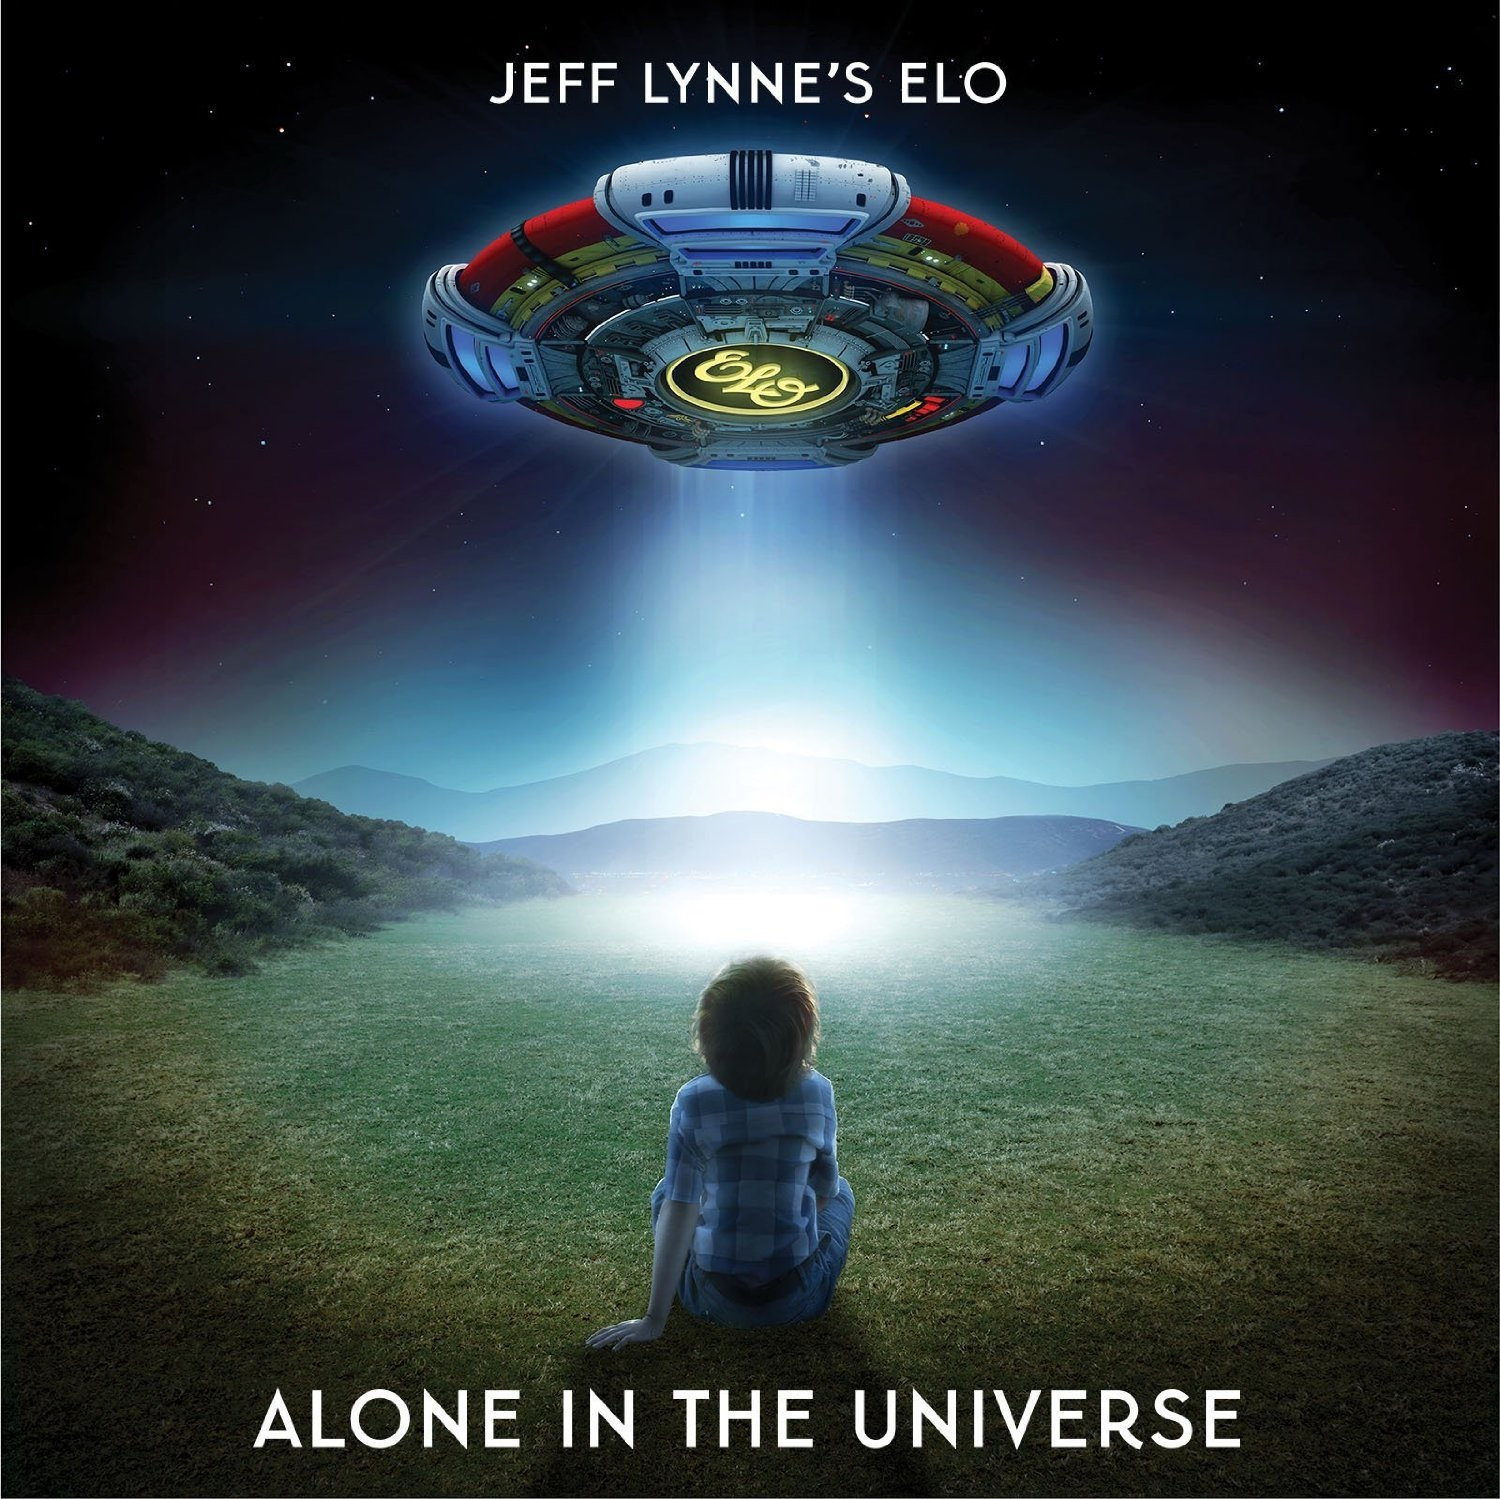 Jeff Lynne's ELO: Alone In The Universe (CD) виниловая пластинка elo jeff lynnes elo alone in the universe